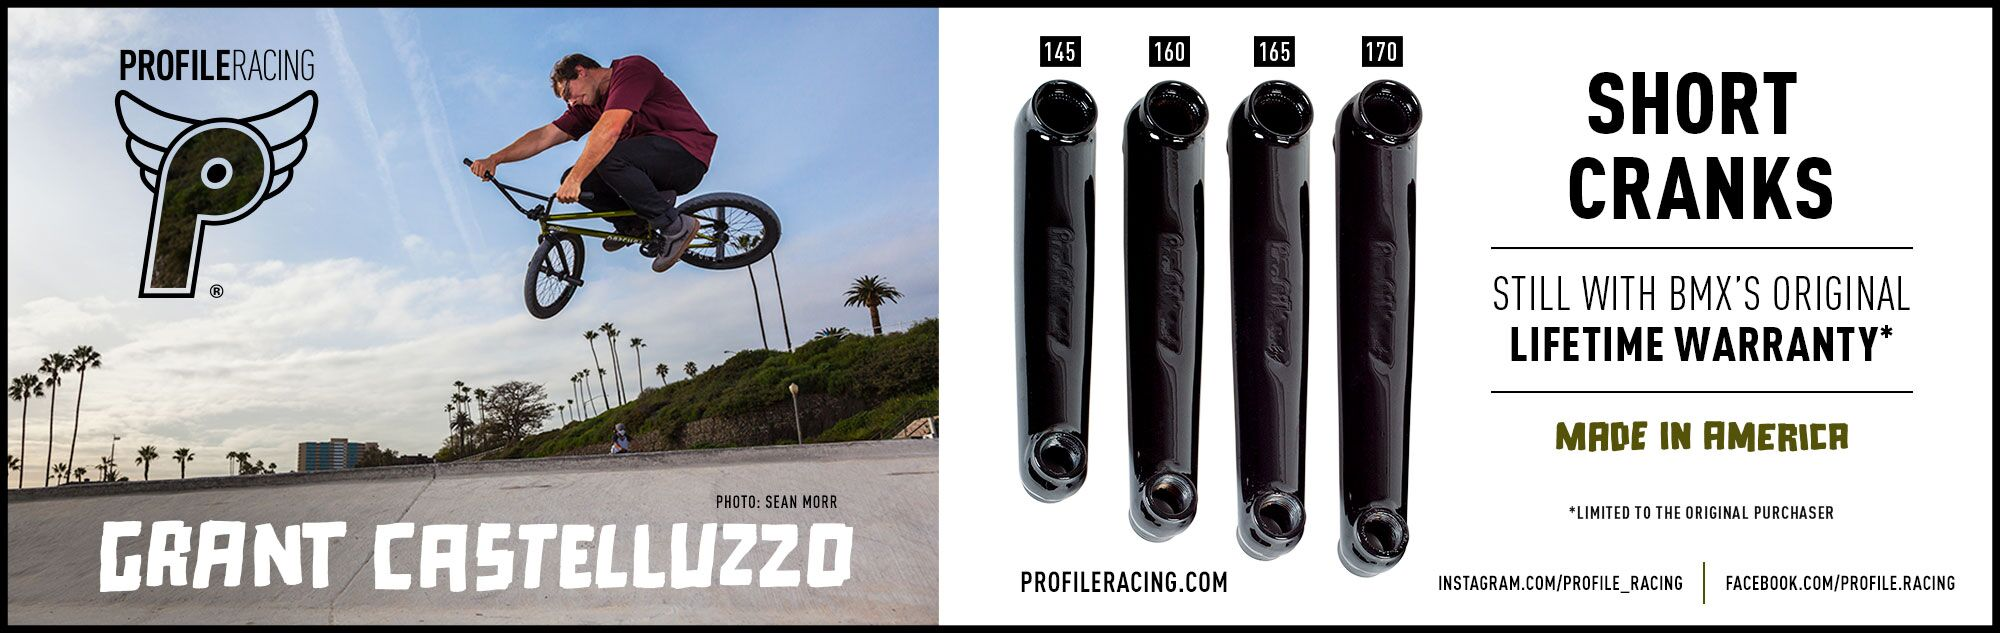 Profile Racing BMX Cranks available in Many Sizes at Albe's BMX